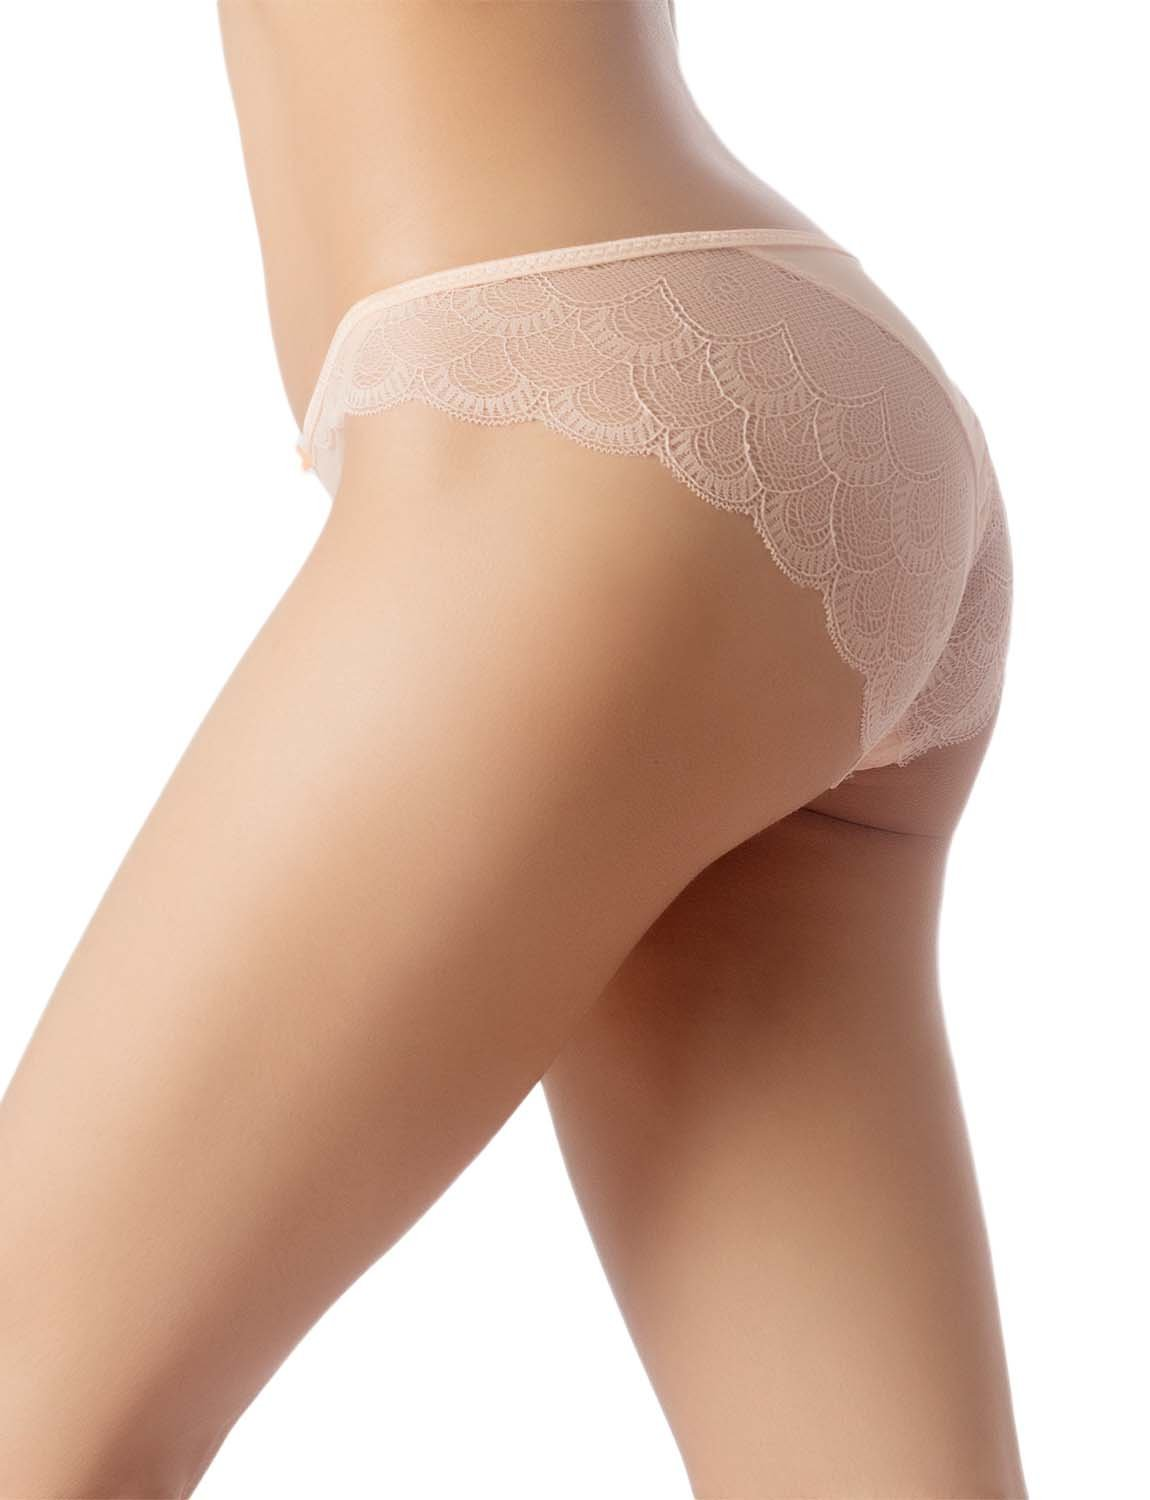 Women's Cotton Layered Lace Wings Trimmed See-Through Low Rise Brief Panty, Size: L, Light Yellow